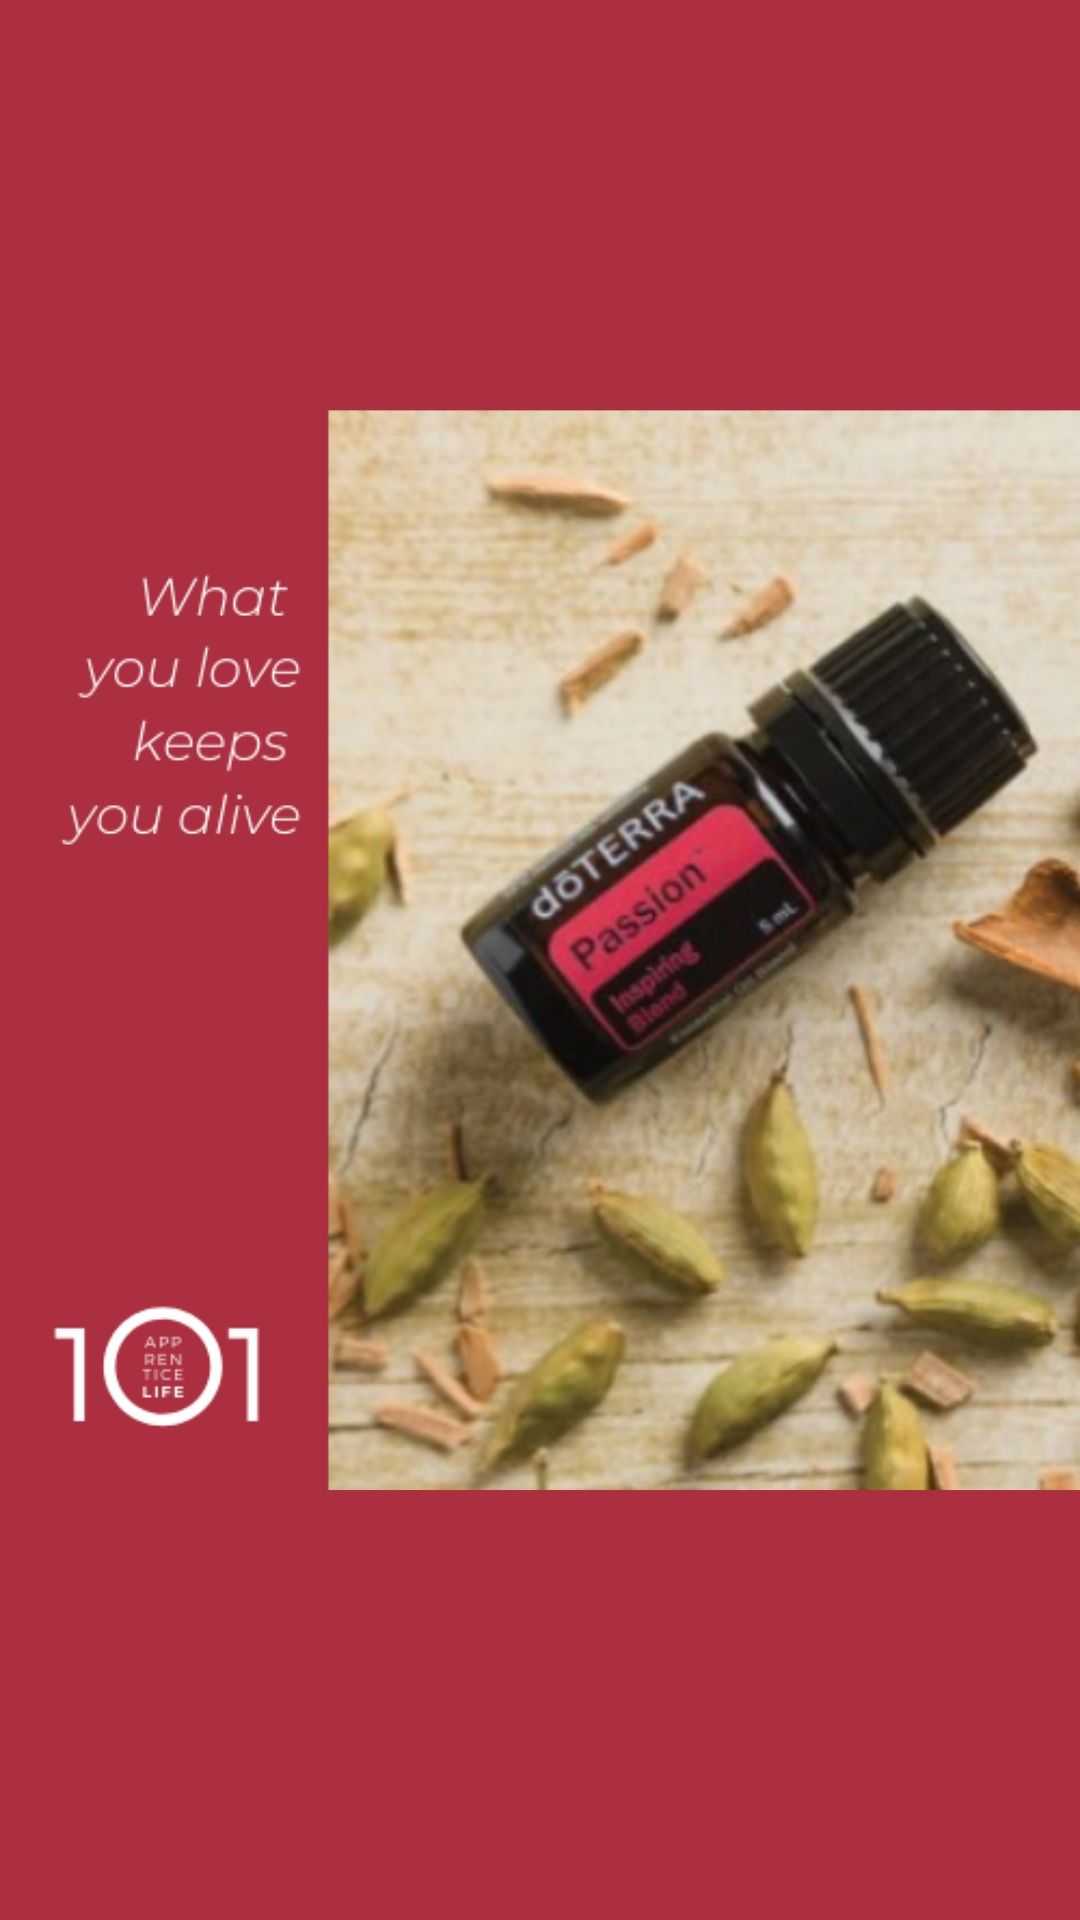 PASSION BLEND WITH ESSENTIAL OILS BECAUSE WHAT YOU LOVE KEEPS YOU ALIVE